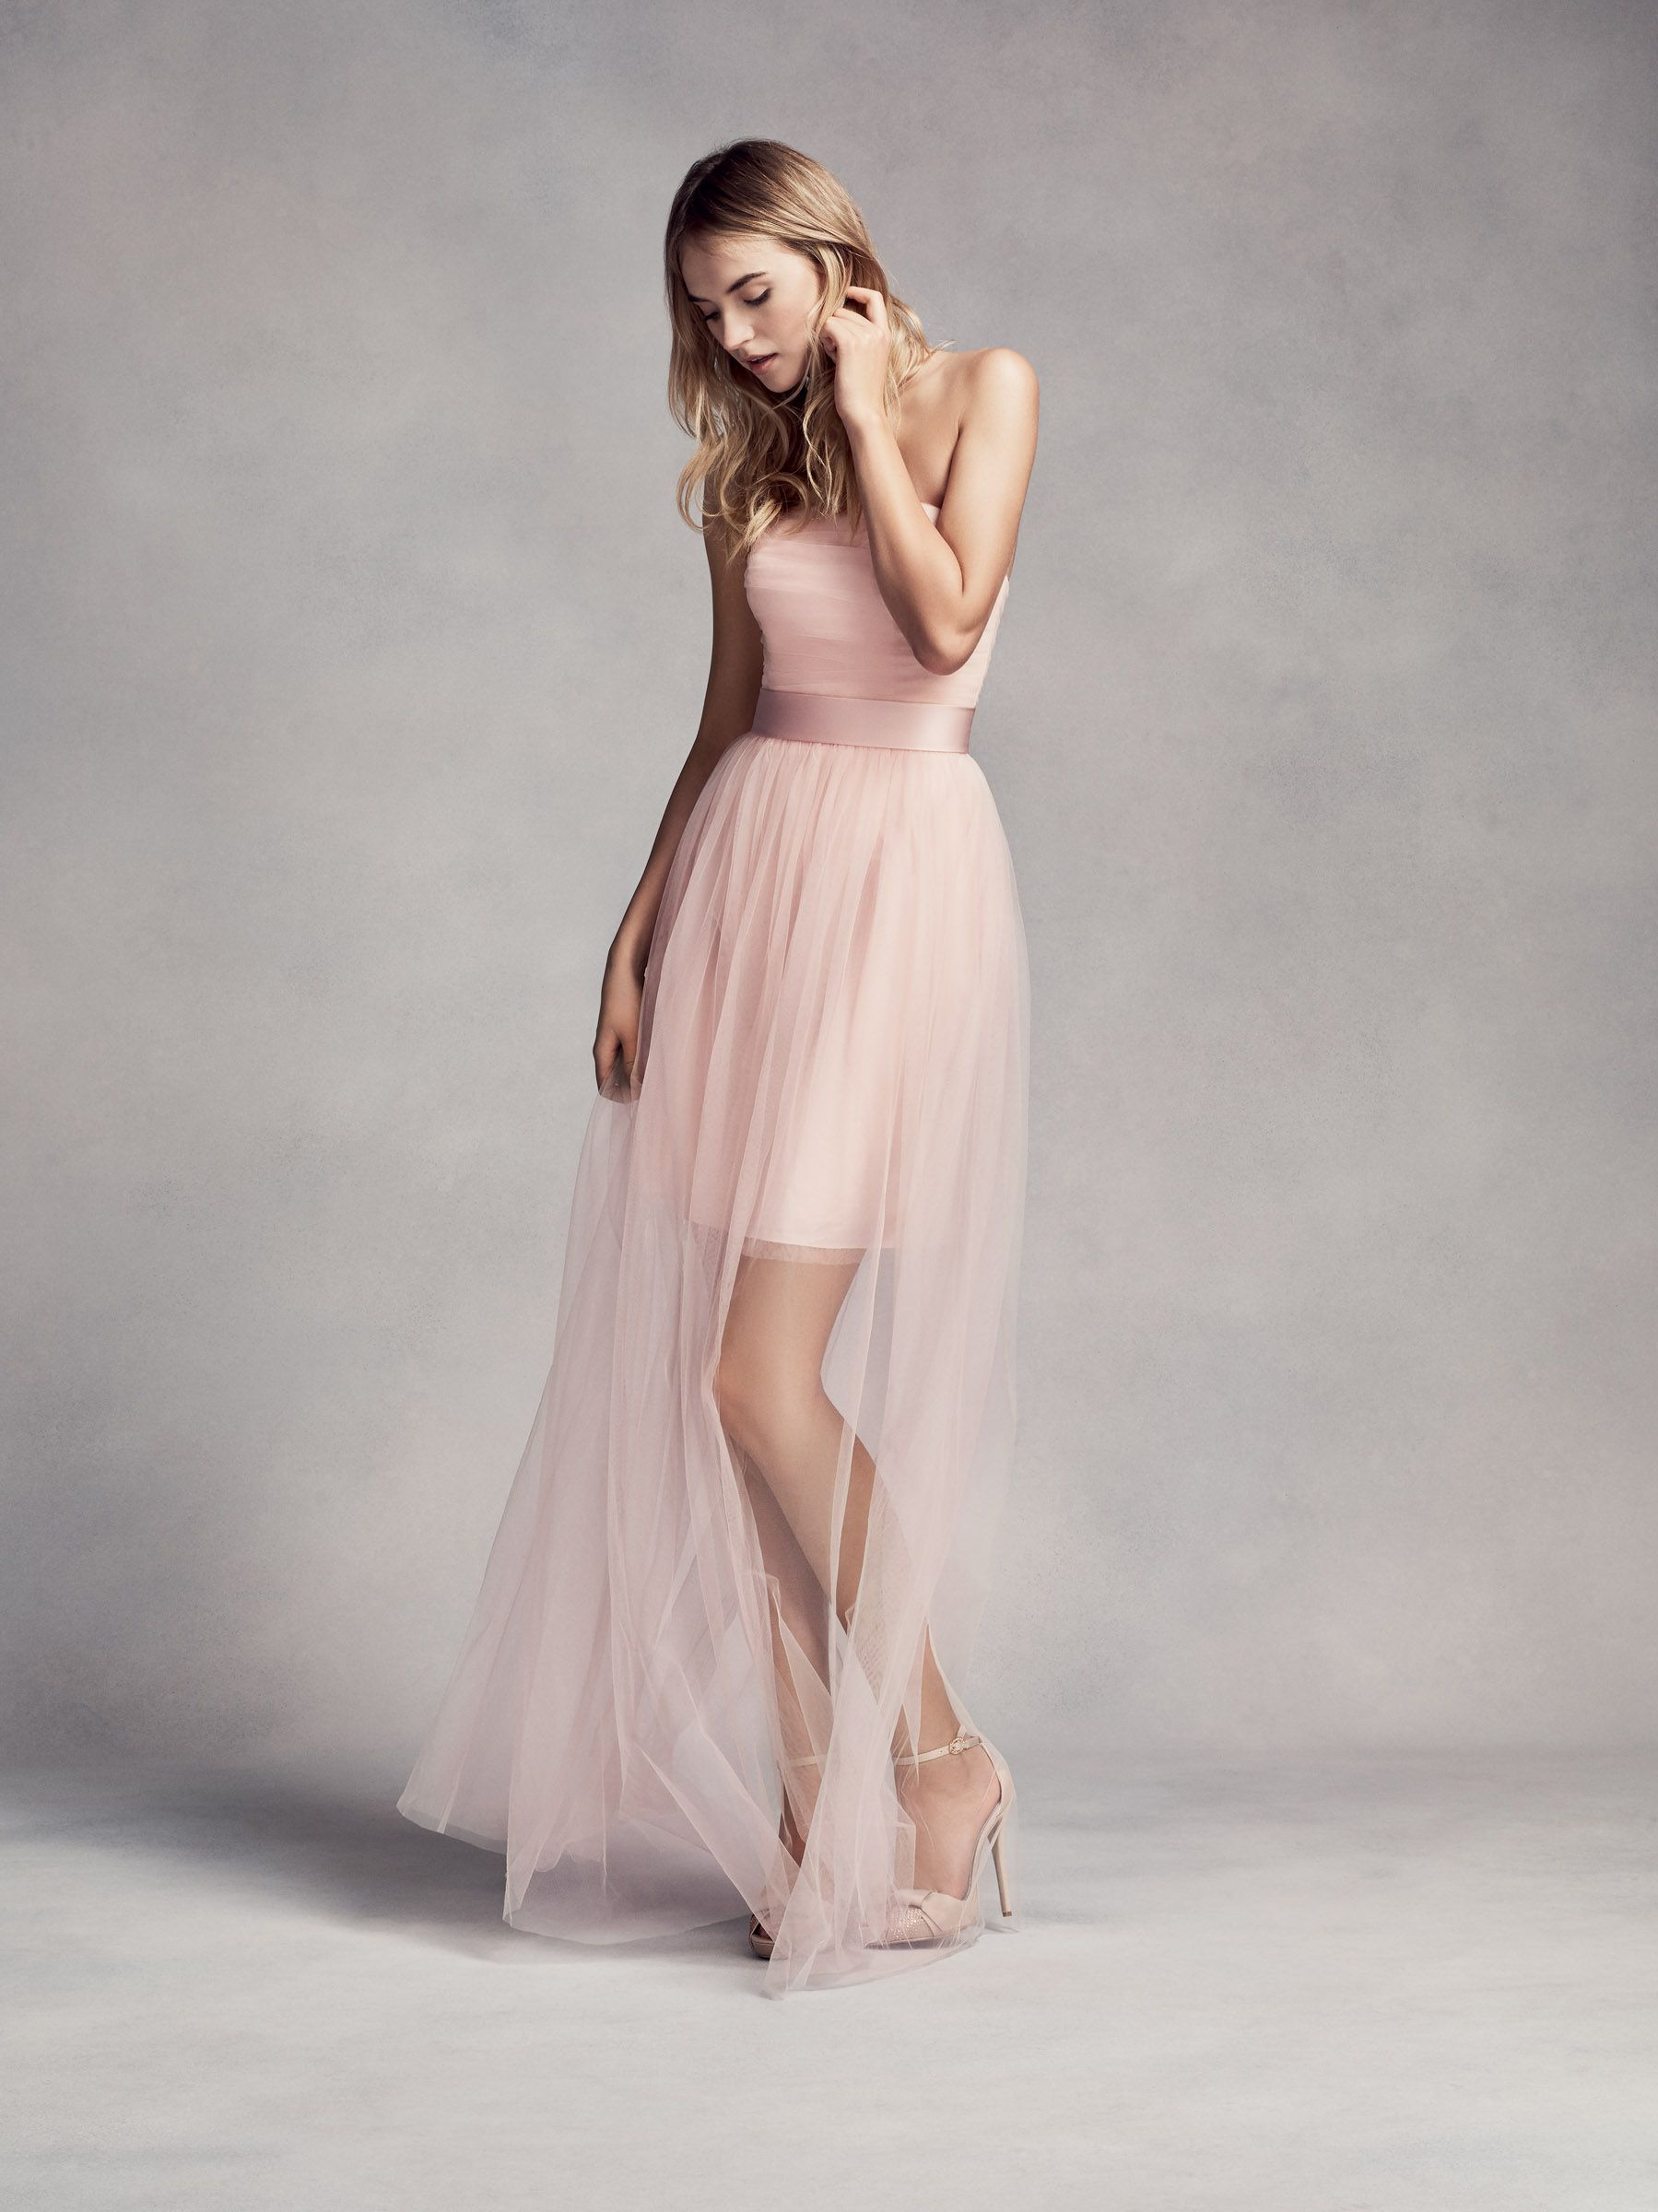 A Blush Pink Bridesmaid Dress With Long Sheer Overlay By White X Vera Is